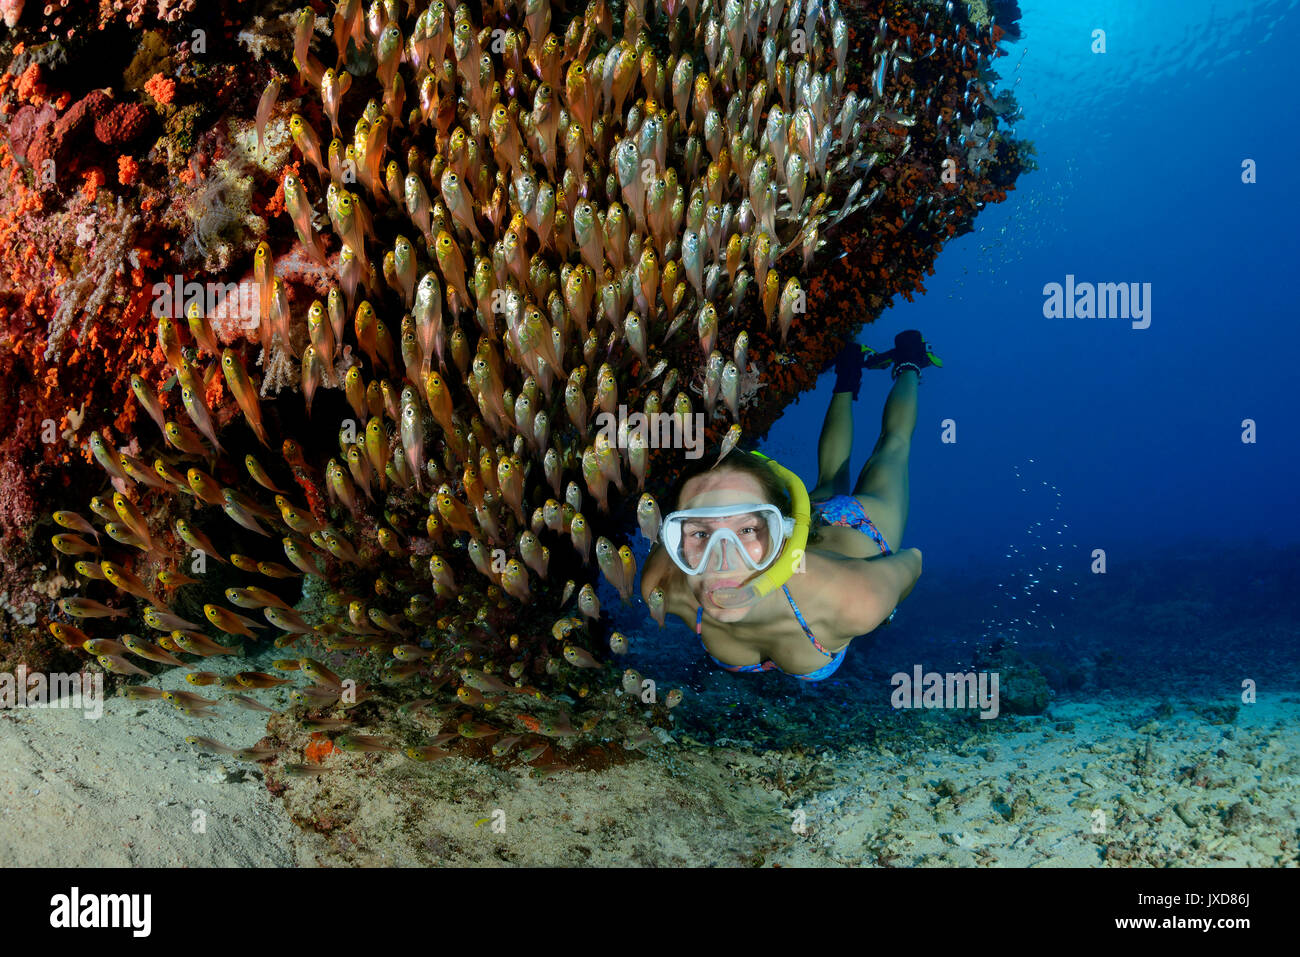 Young woman snorkeling in beautiful Coralreef with school of Pigmy Sweeper, glassfishes, Selayar Island, Indonesia, Indian Ocean - Stock Image